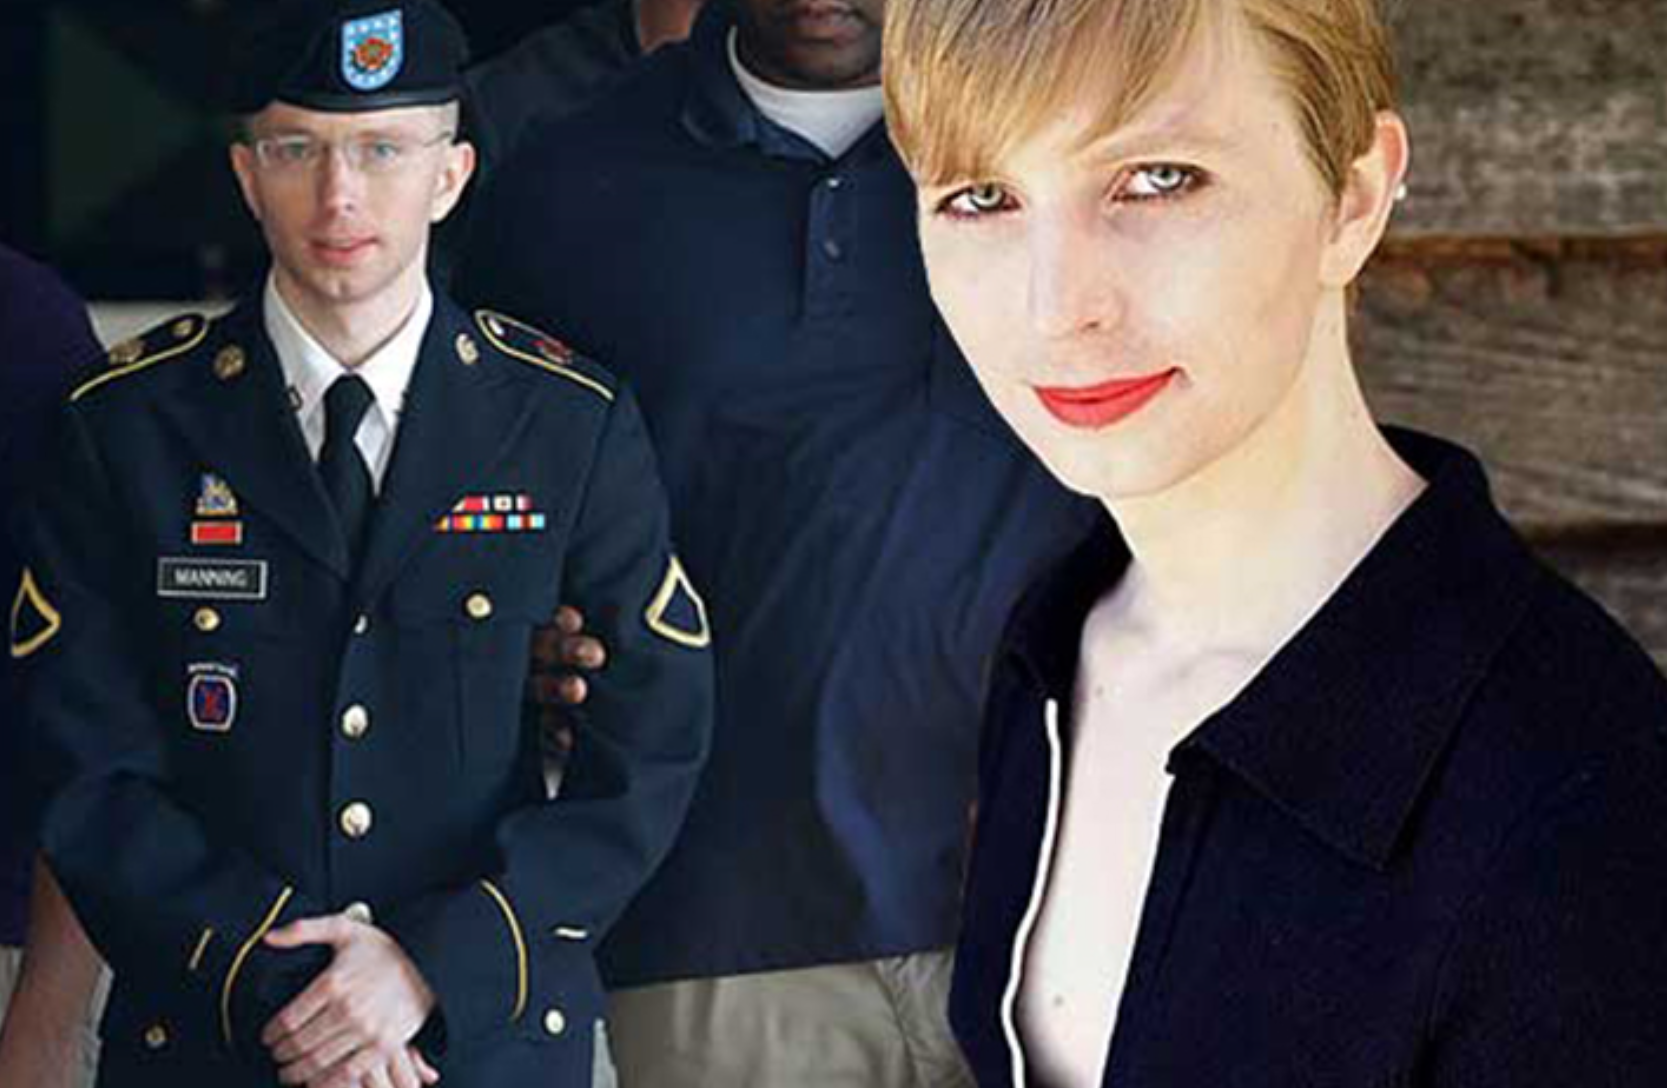 Chelsea Manning jailed for refusing to testify before secret grand jury in WikiLeaks case